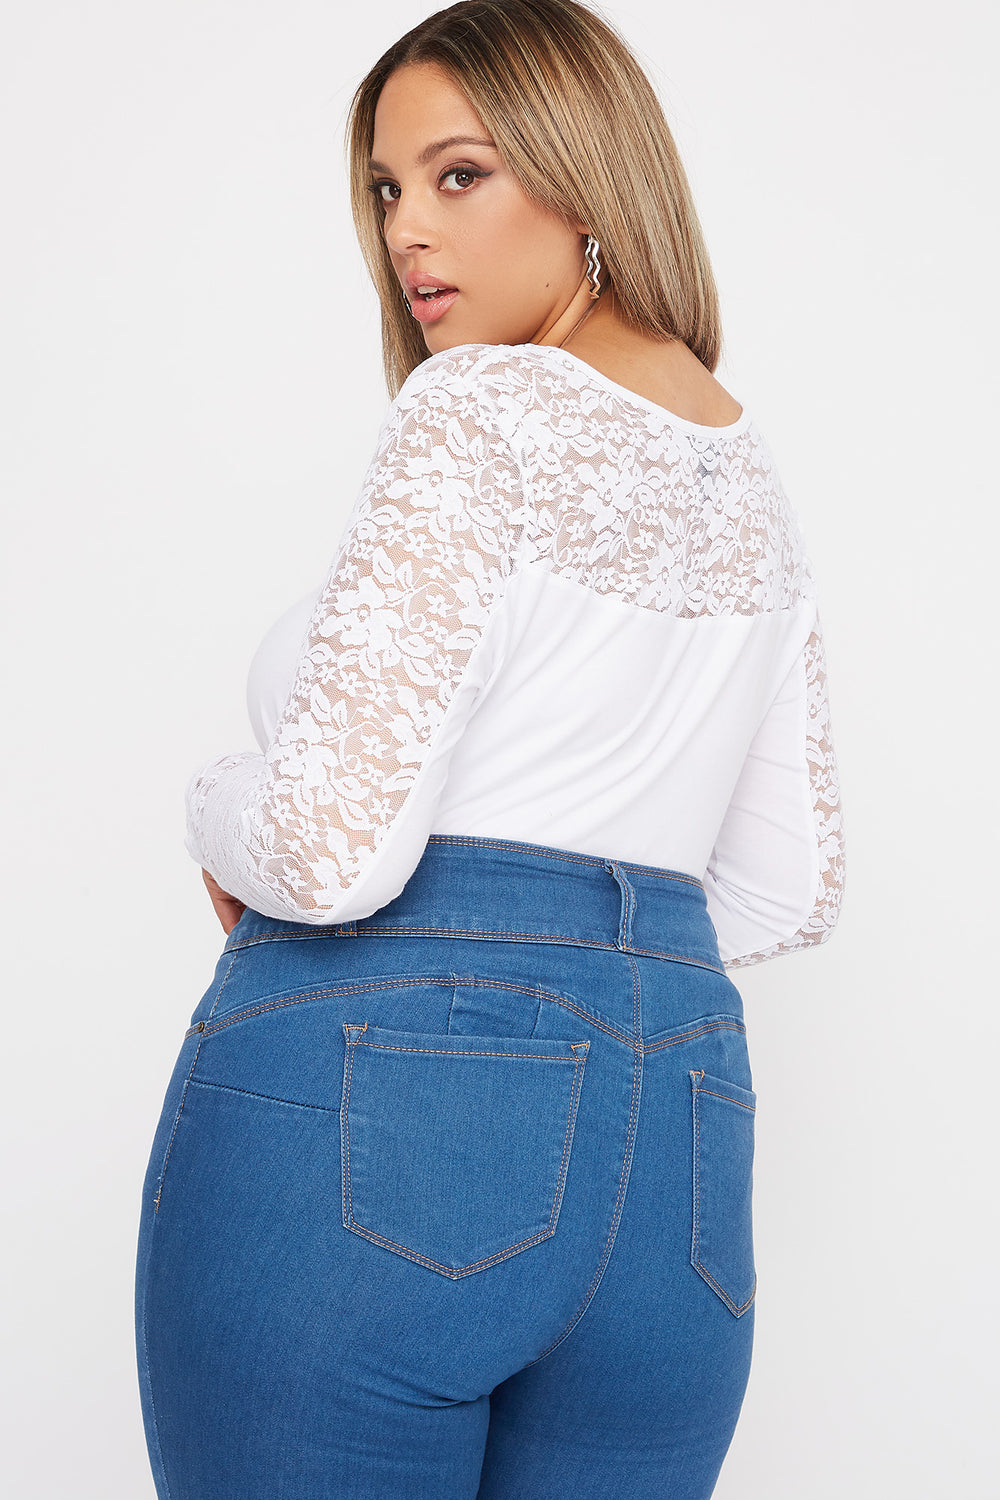 Plus Size Contrast Lace Long Sleeve White